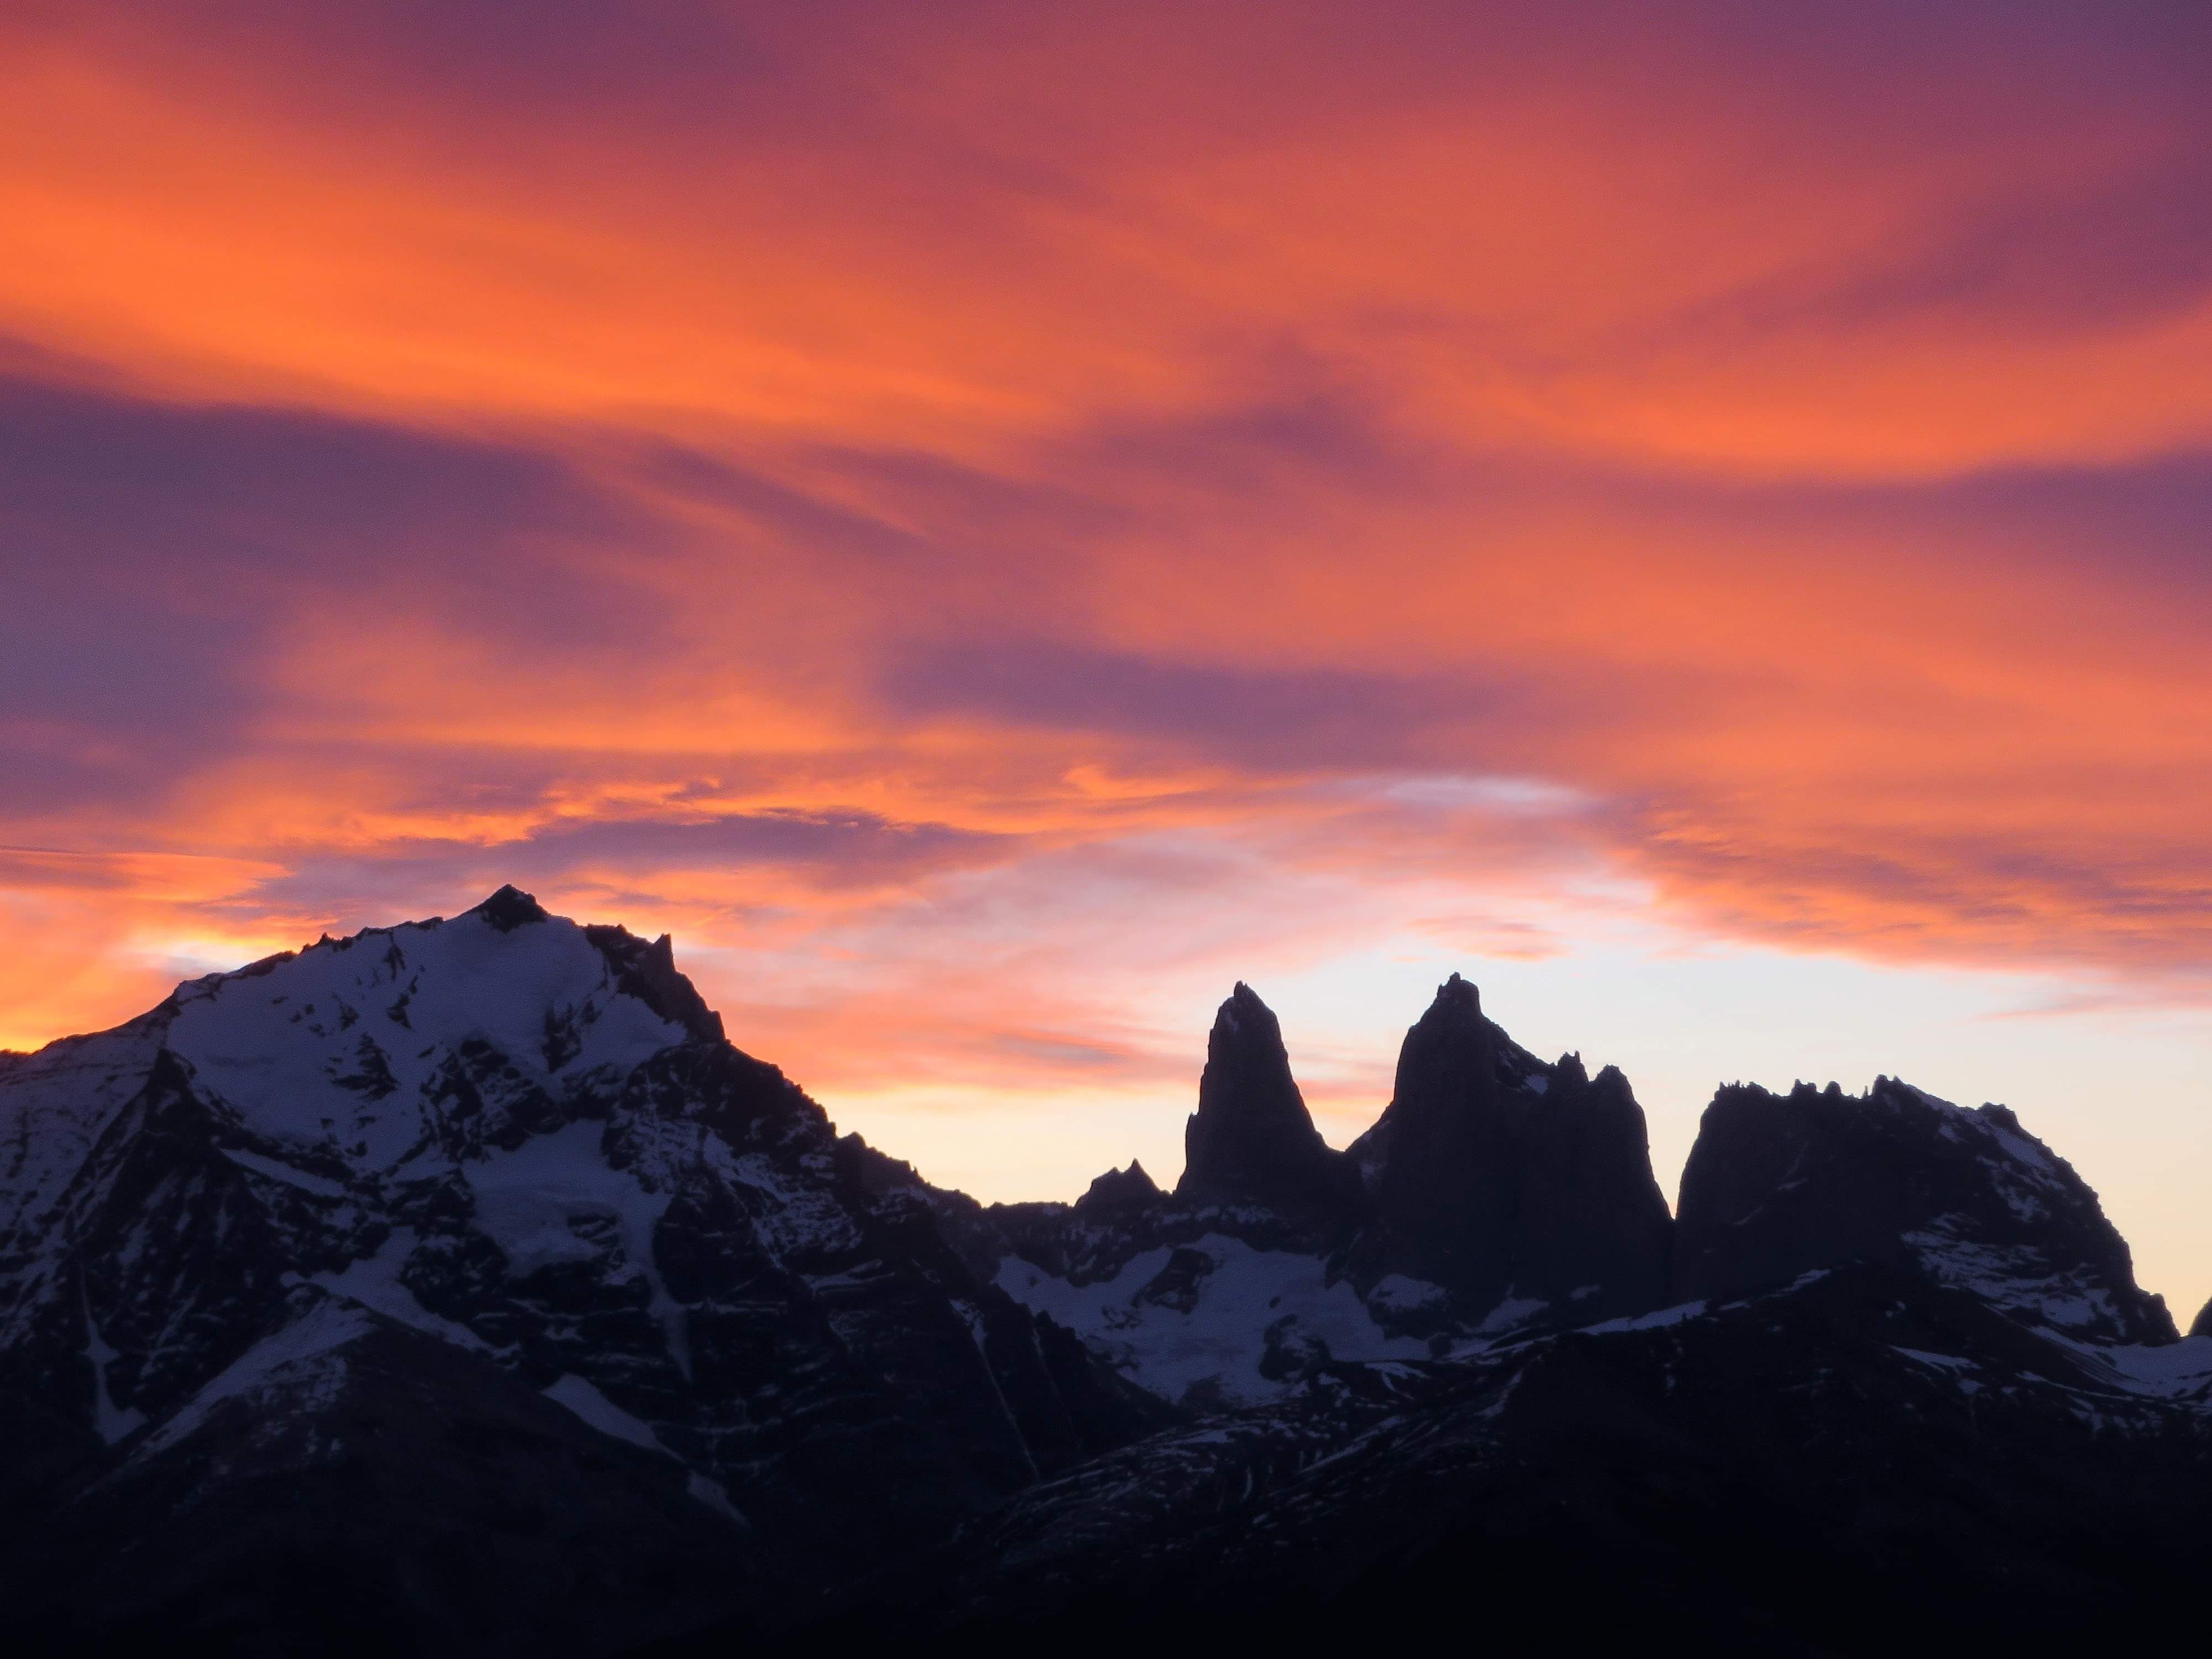 Sud America_Cile_Parco Nazionale Torres del Paine_Awasi_Tramonto